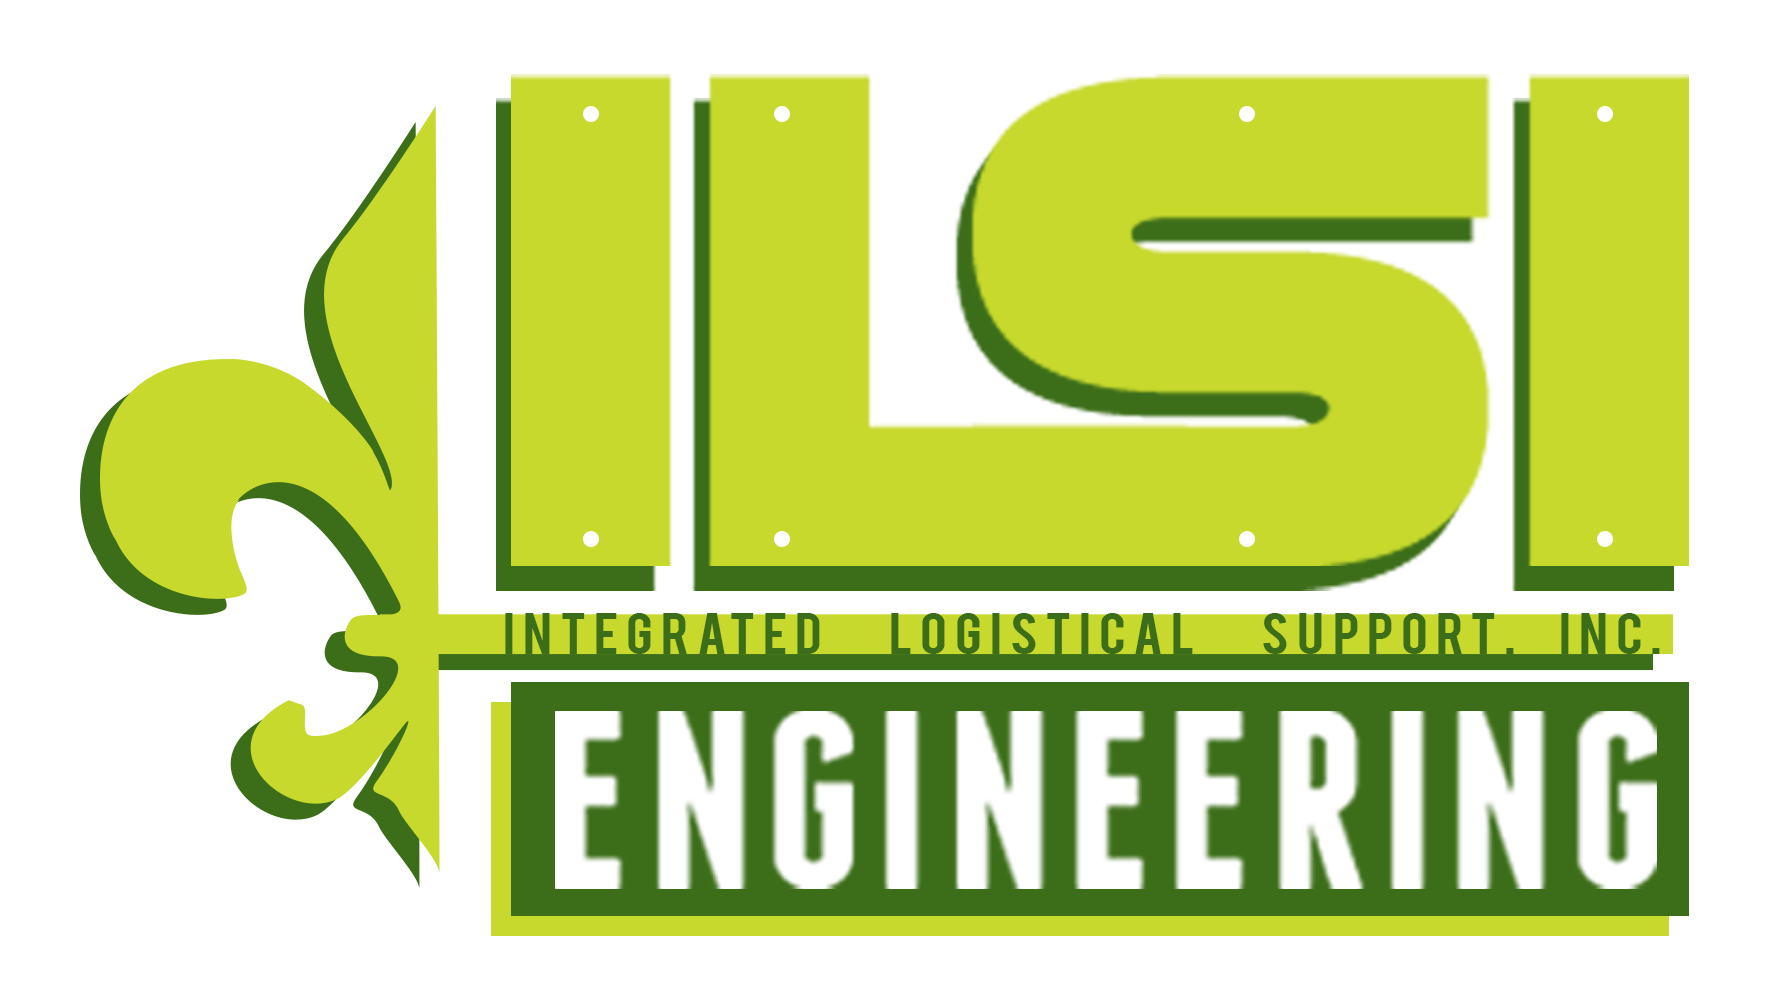 ILSI ENGINEERING Logo